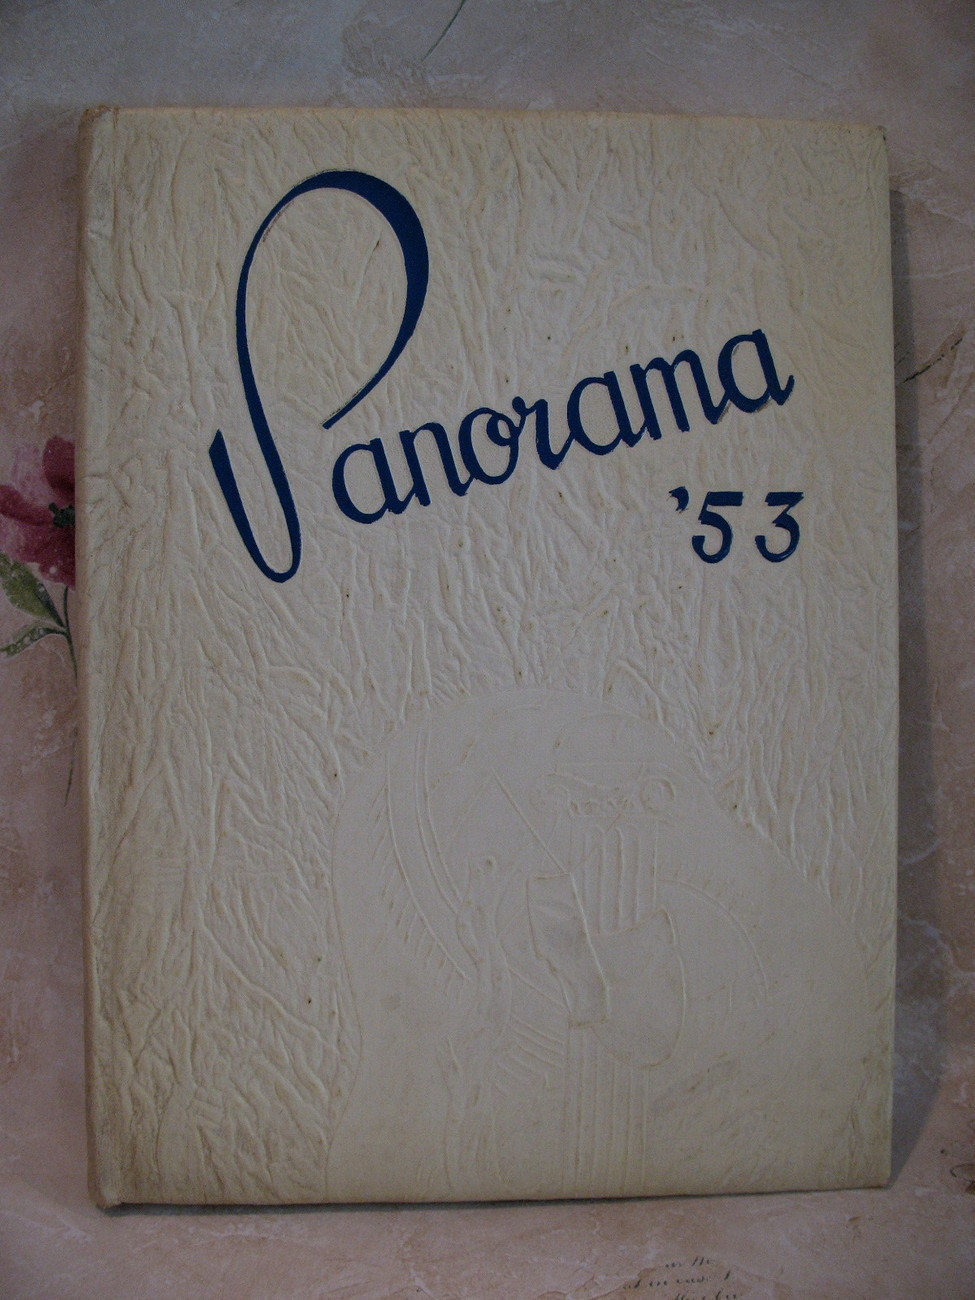 Suffern High School Yearbook Panorama 1953 New York